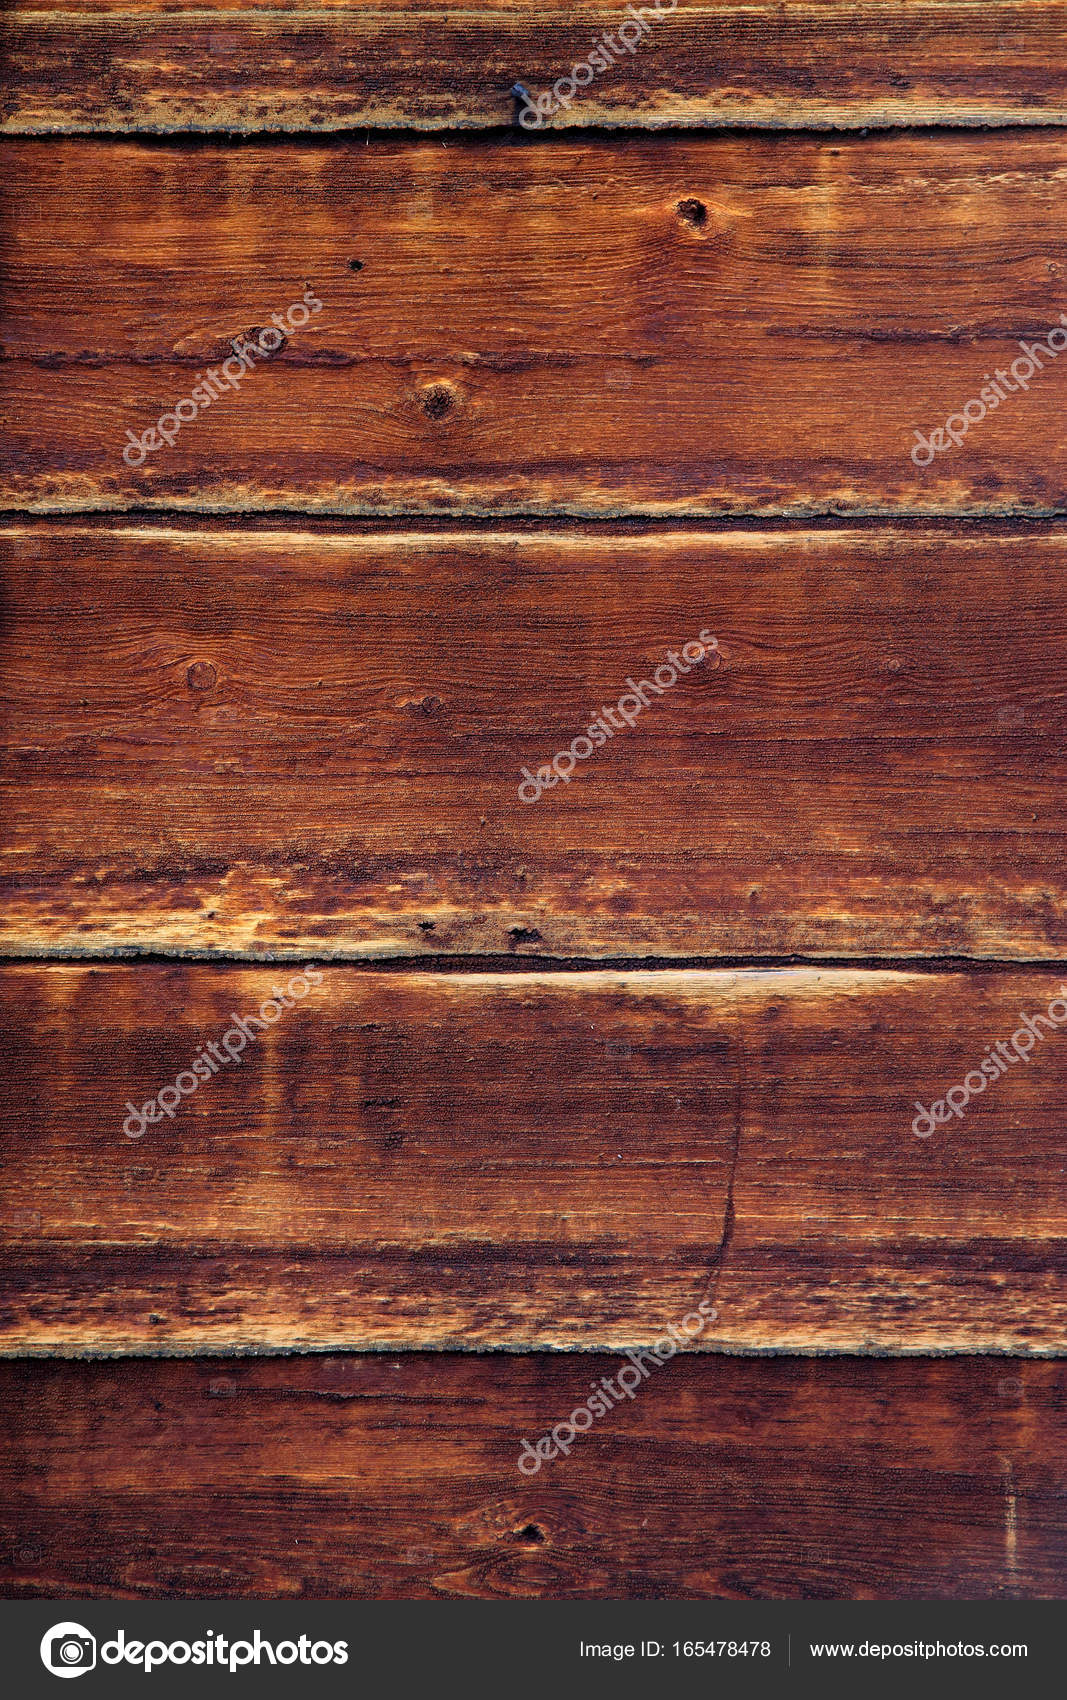 Wooden Textures Wood Panel Background Texture Of Boards Photo By Catiivanoff Mail Ru